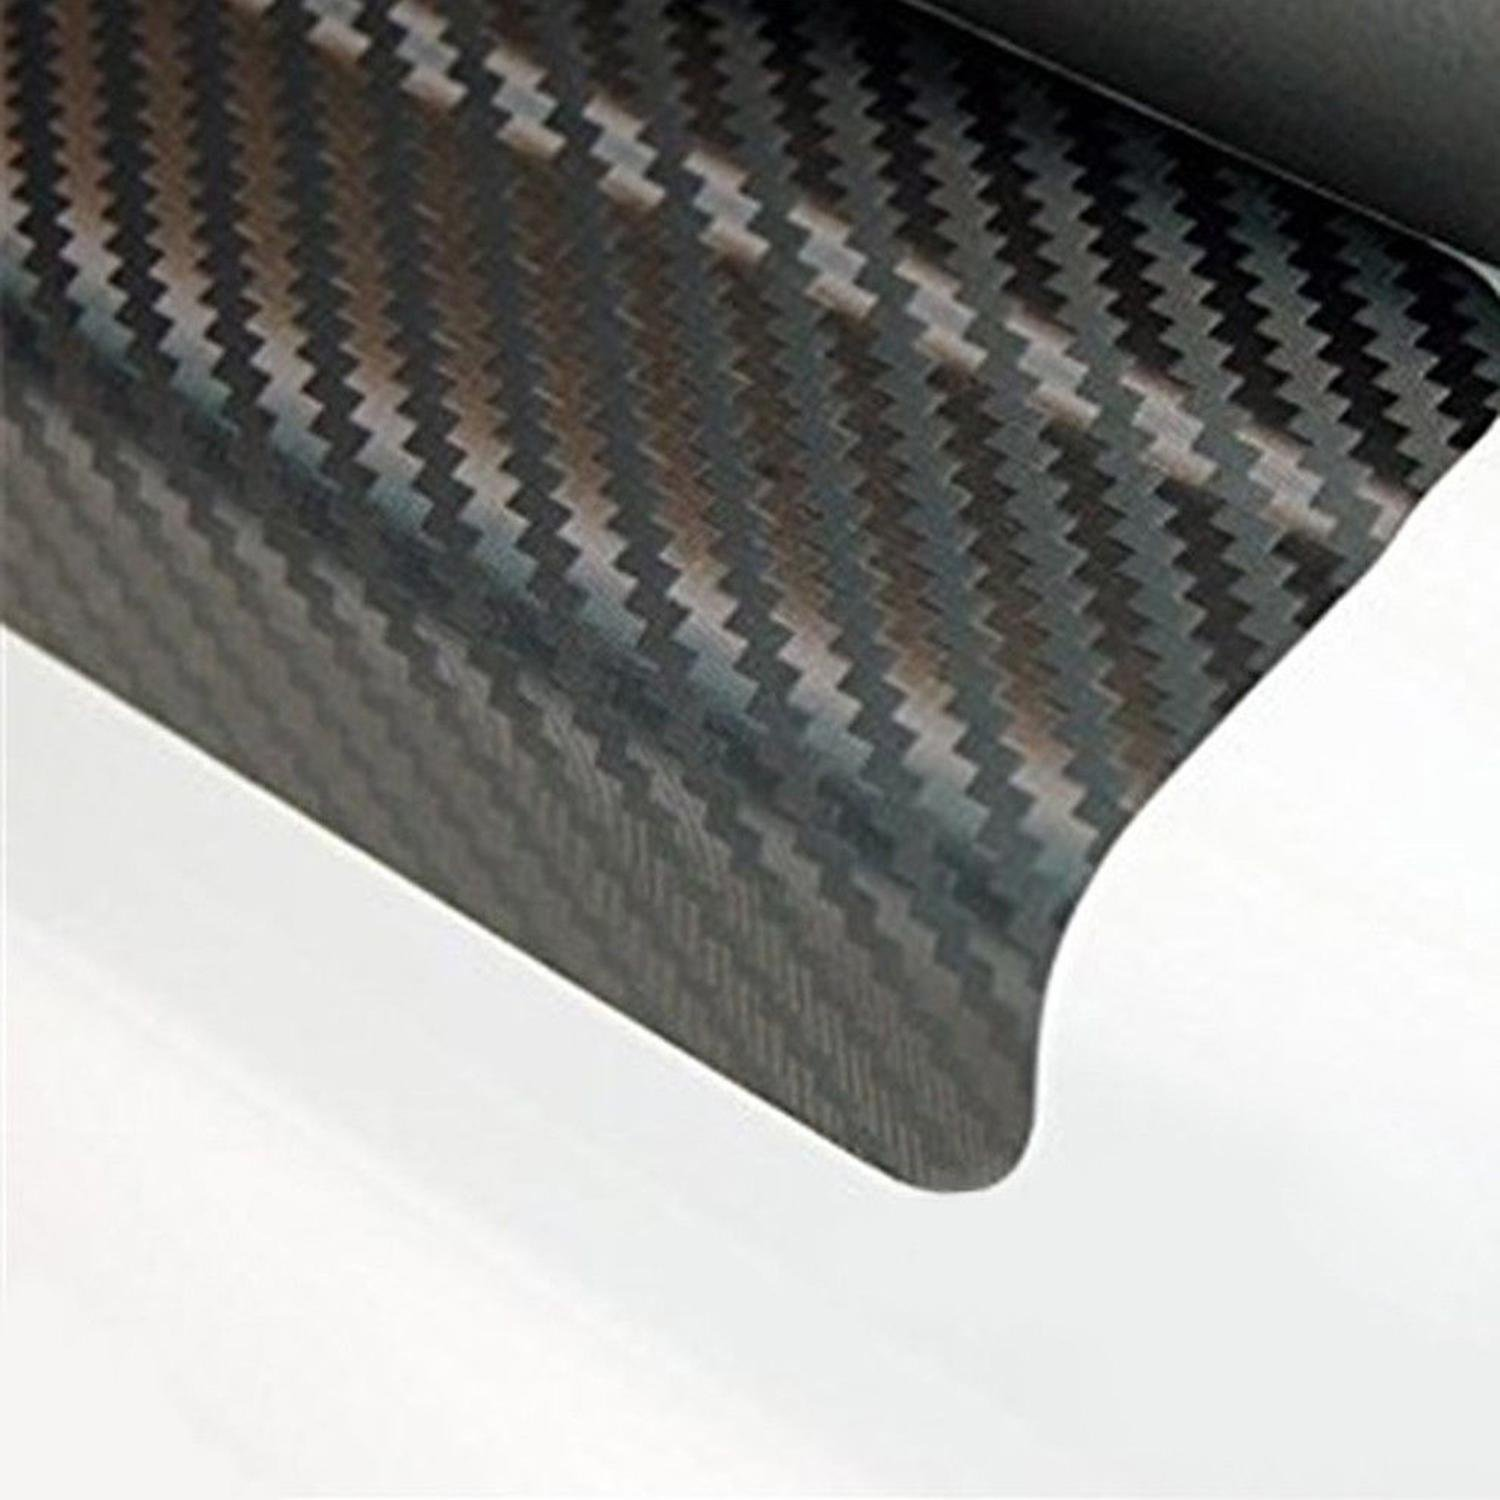 Babnane Car Door Sill Scuff Anti Scratch Carbon Fiber Stickers Car Protect Accessories Deca Protective Shields